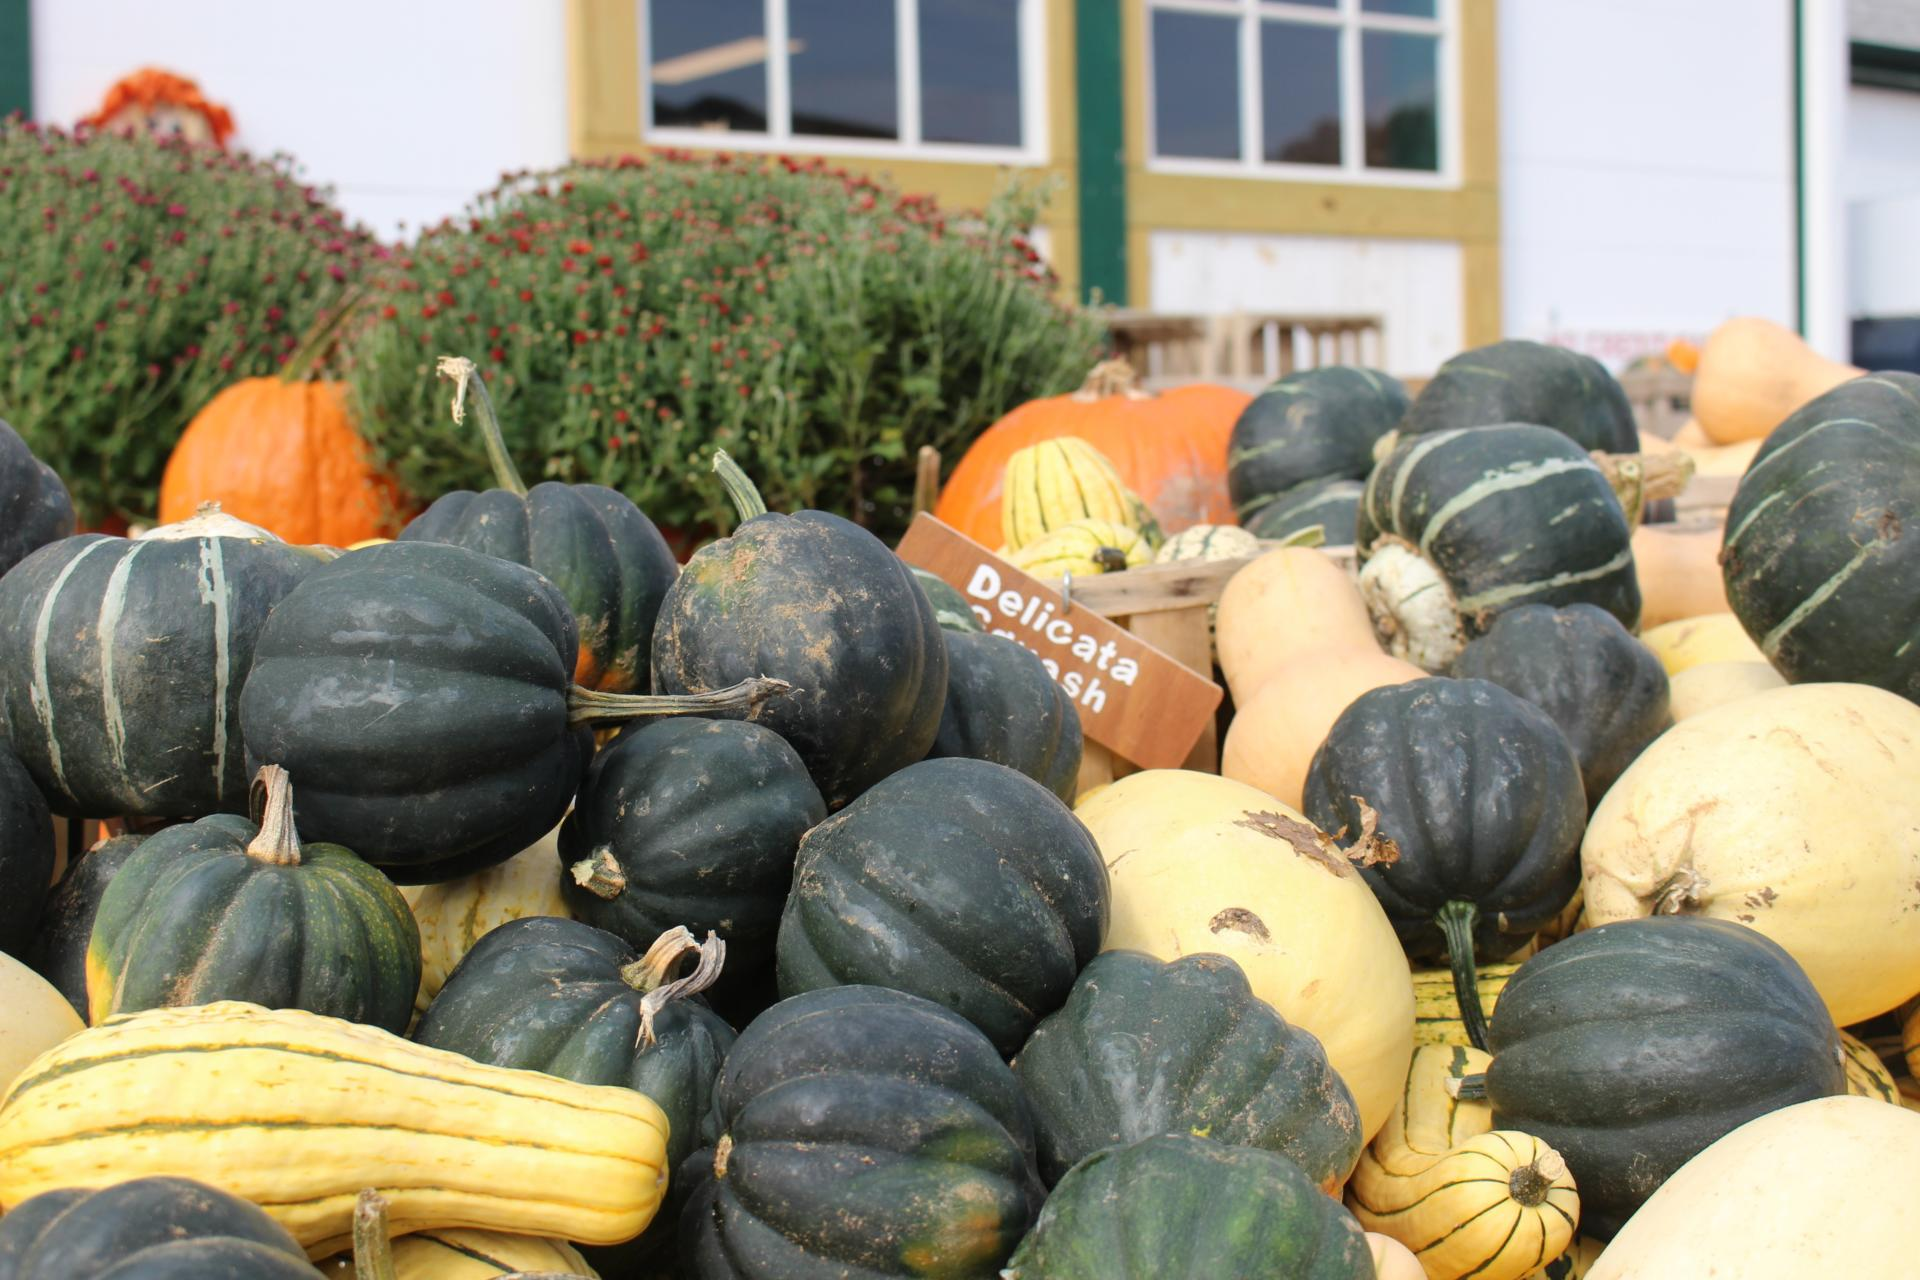 LOCAL: Apple Picking and Pumpkin Patching at Riamede Farm